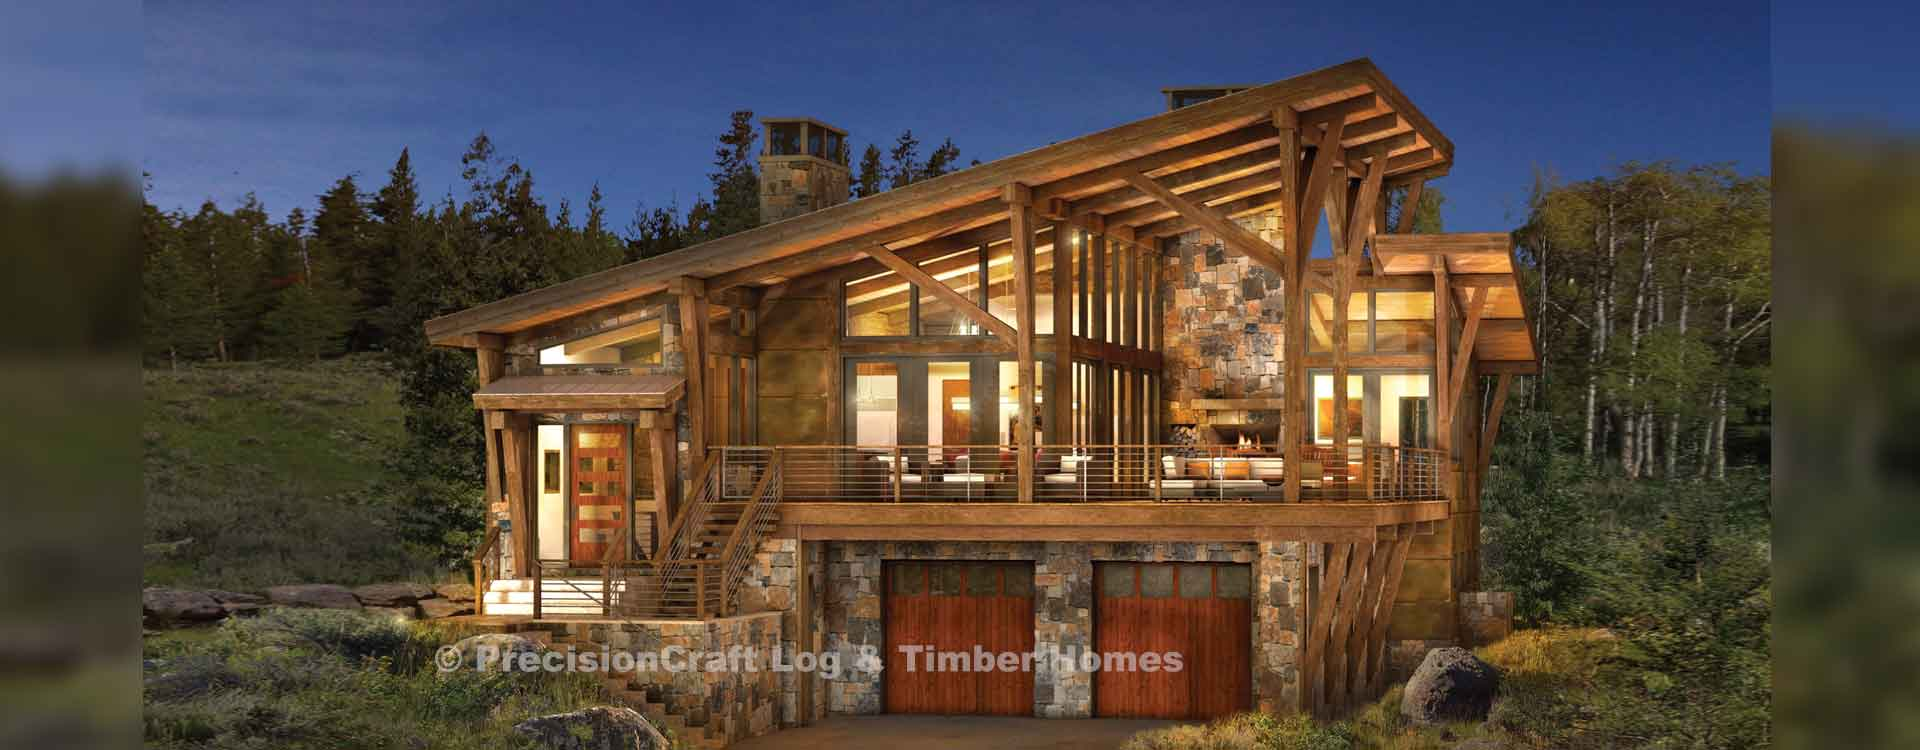 Brighton Modern Timber Frame Floor Plan - Timber frame homes plans